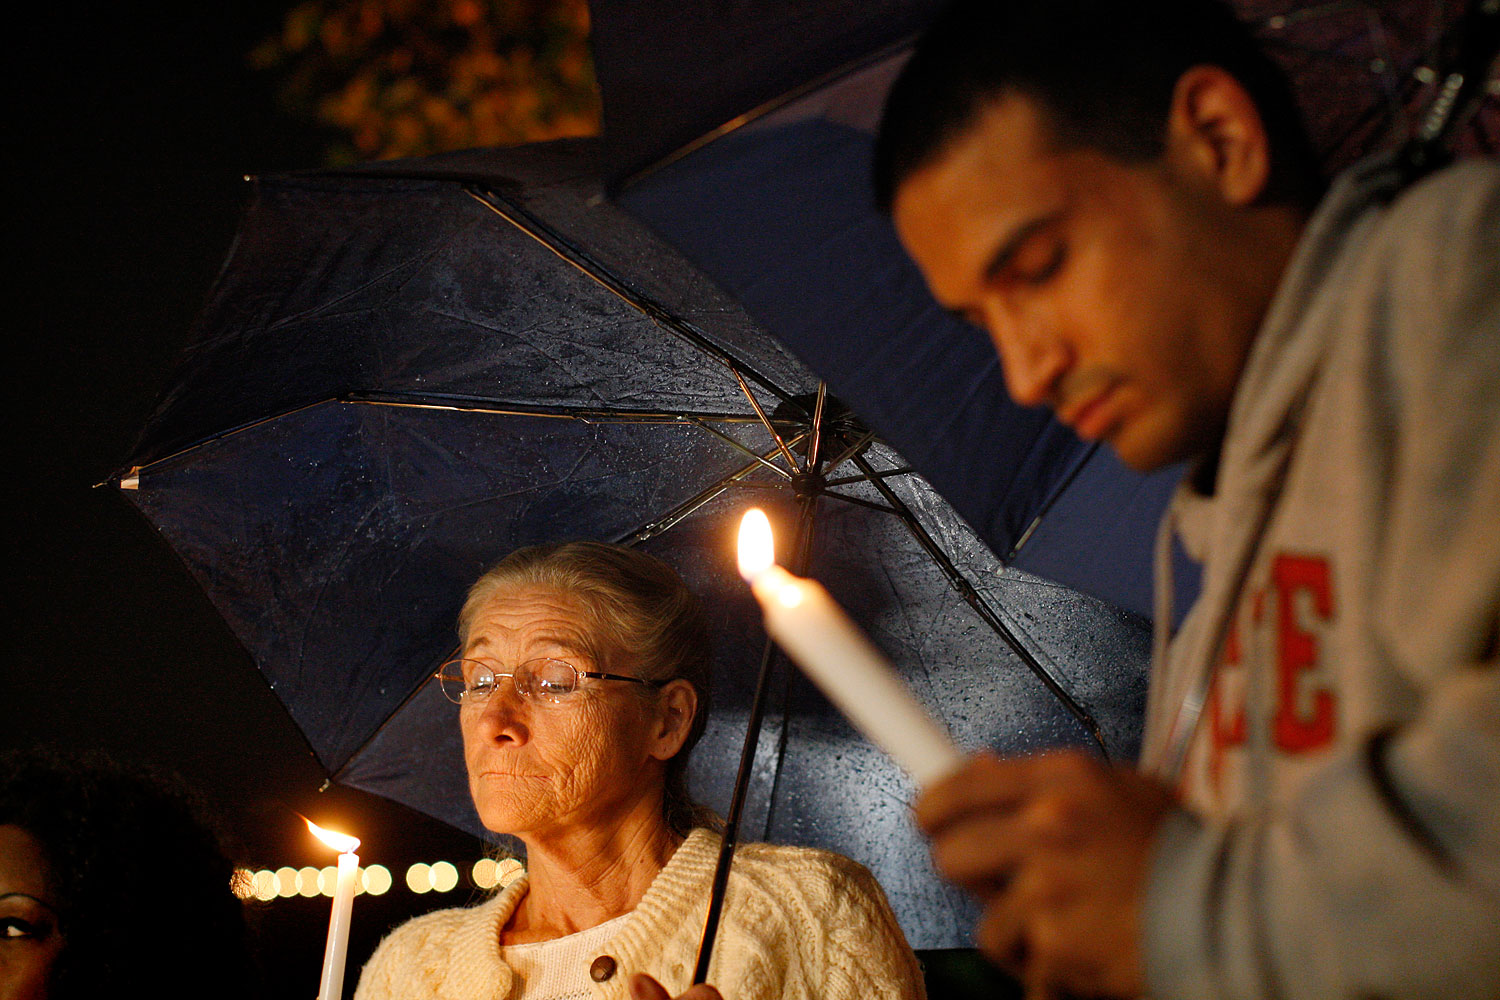 image: Doreen Finsinger and Raagir Quraishi pray during a candlelight vigil in memory of those killed in a mass shooting at Sandy Hook Elementary School in Connecticut, in Los Angeles, California